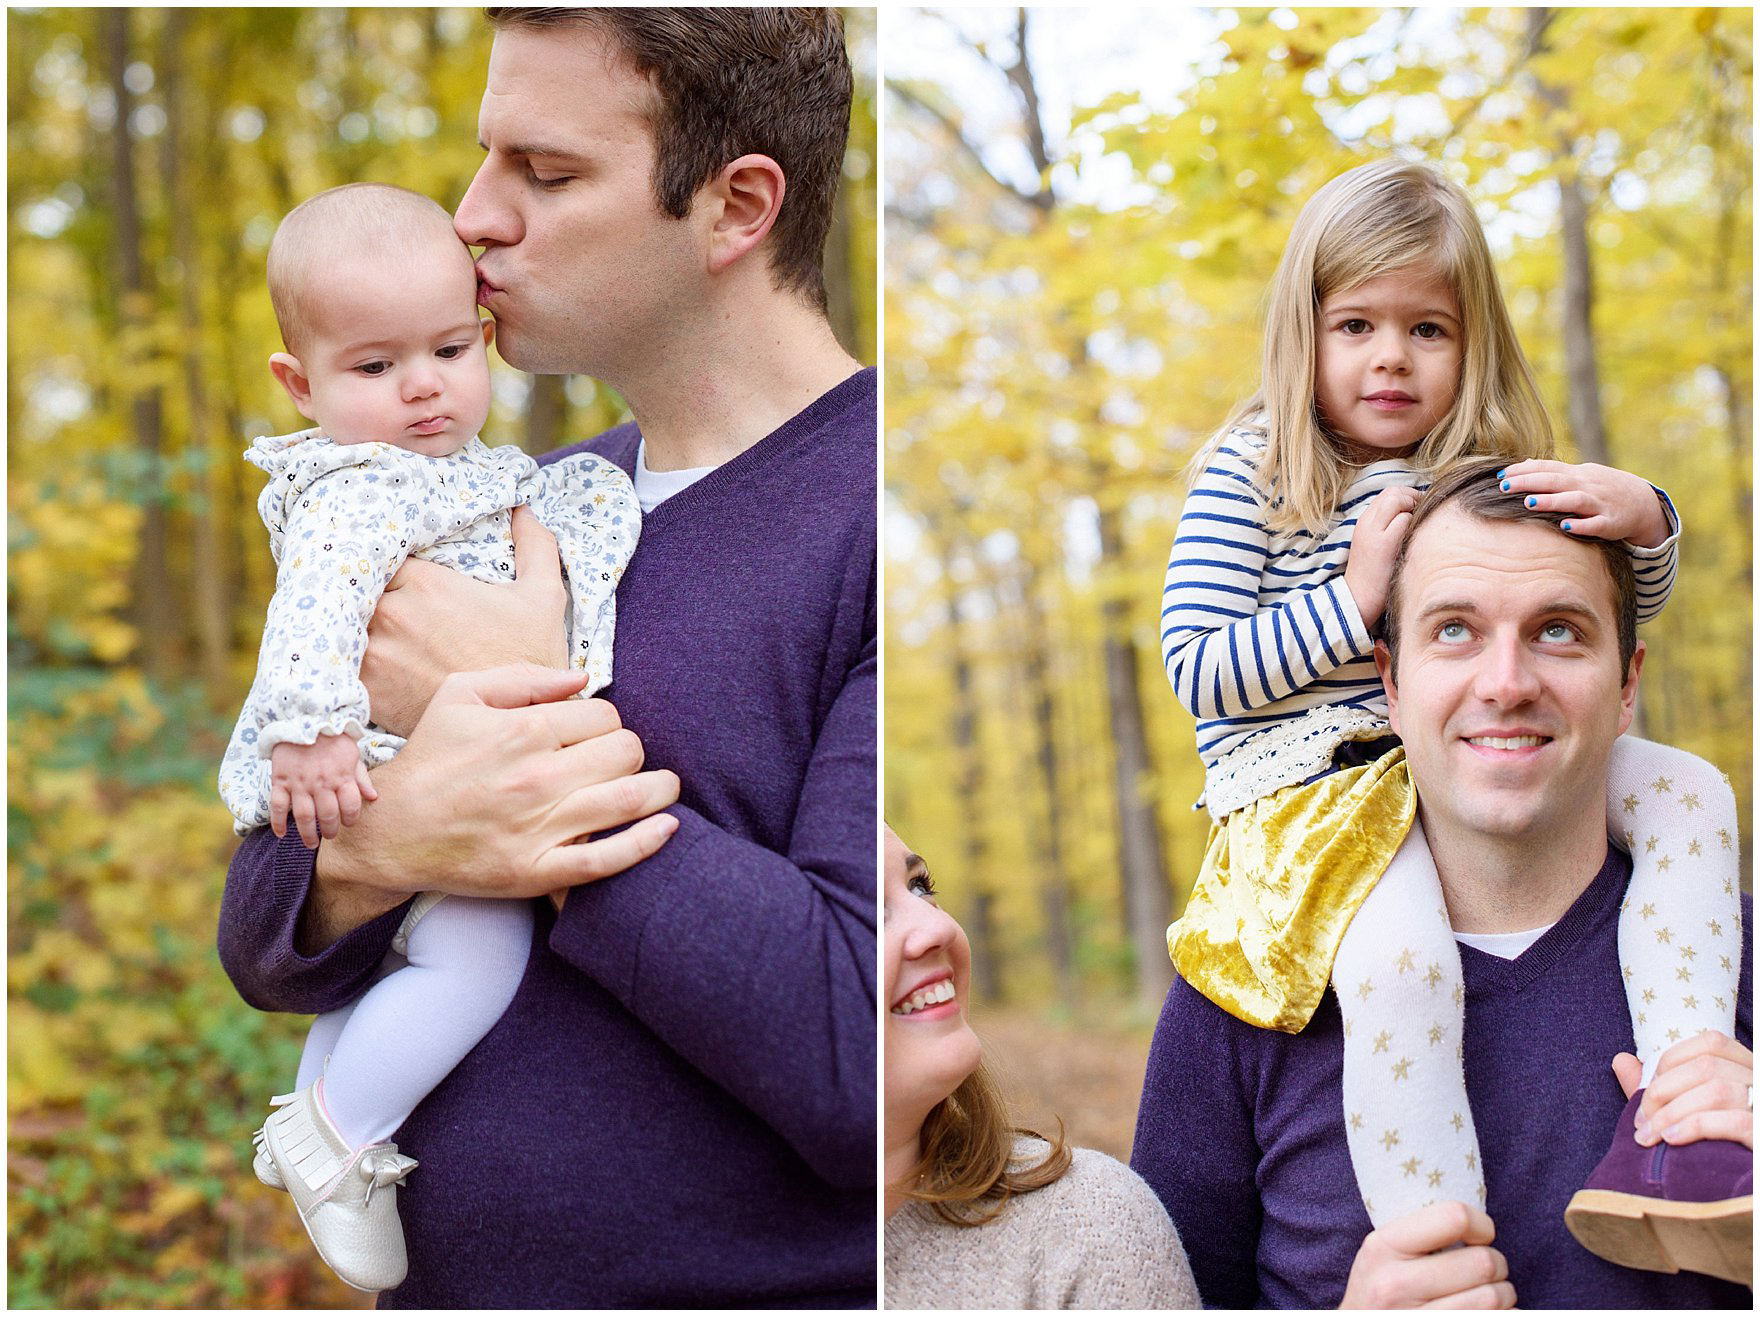 A family walks and plays among the golden leaves during a Morton Arboretum fall family session.